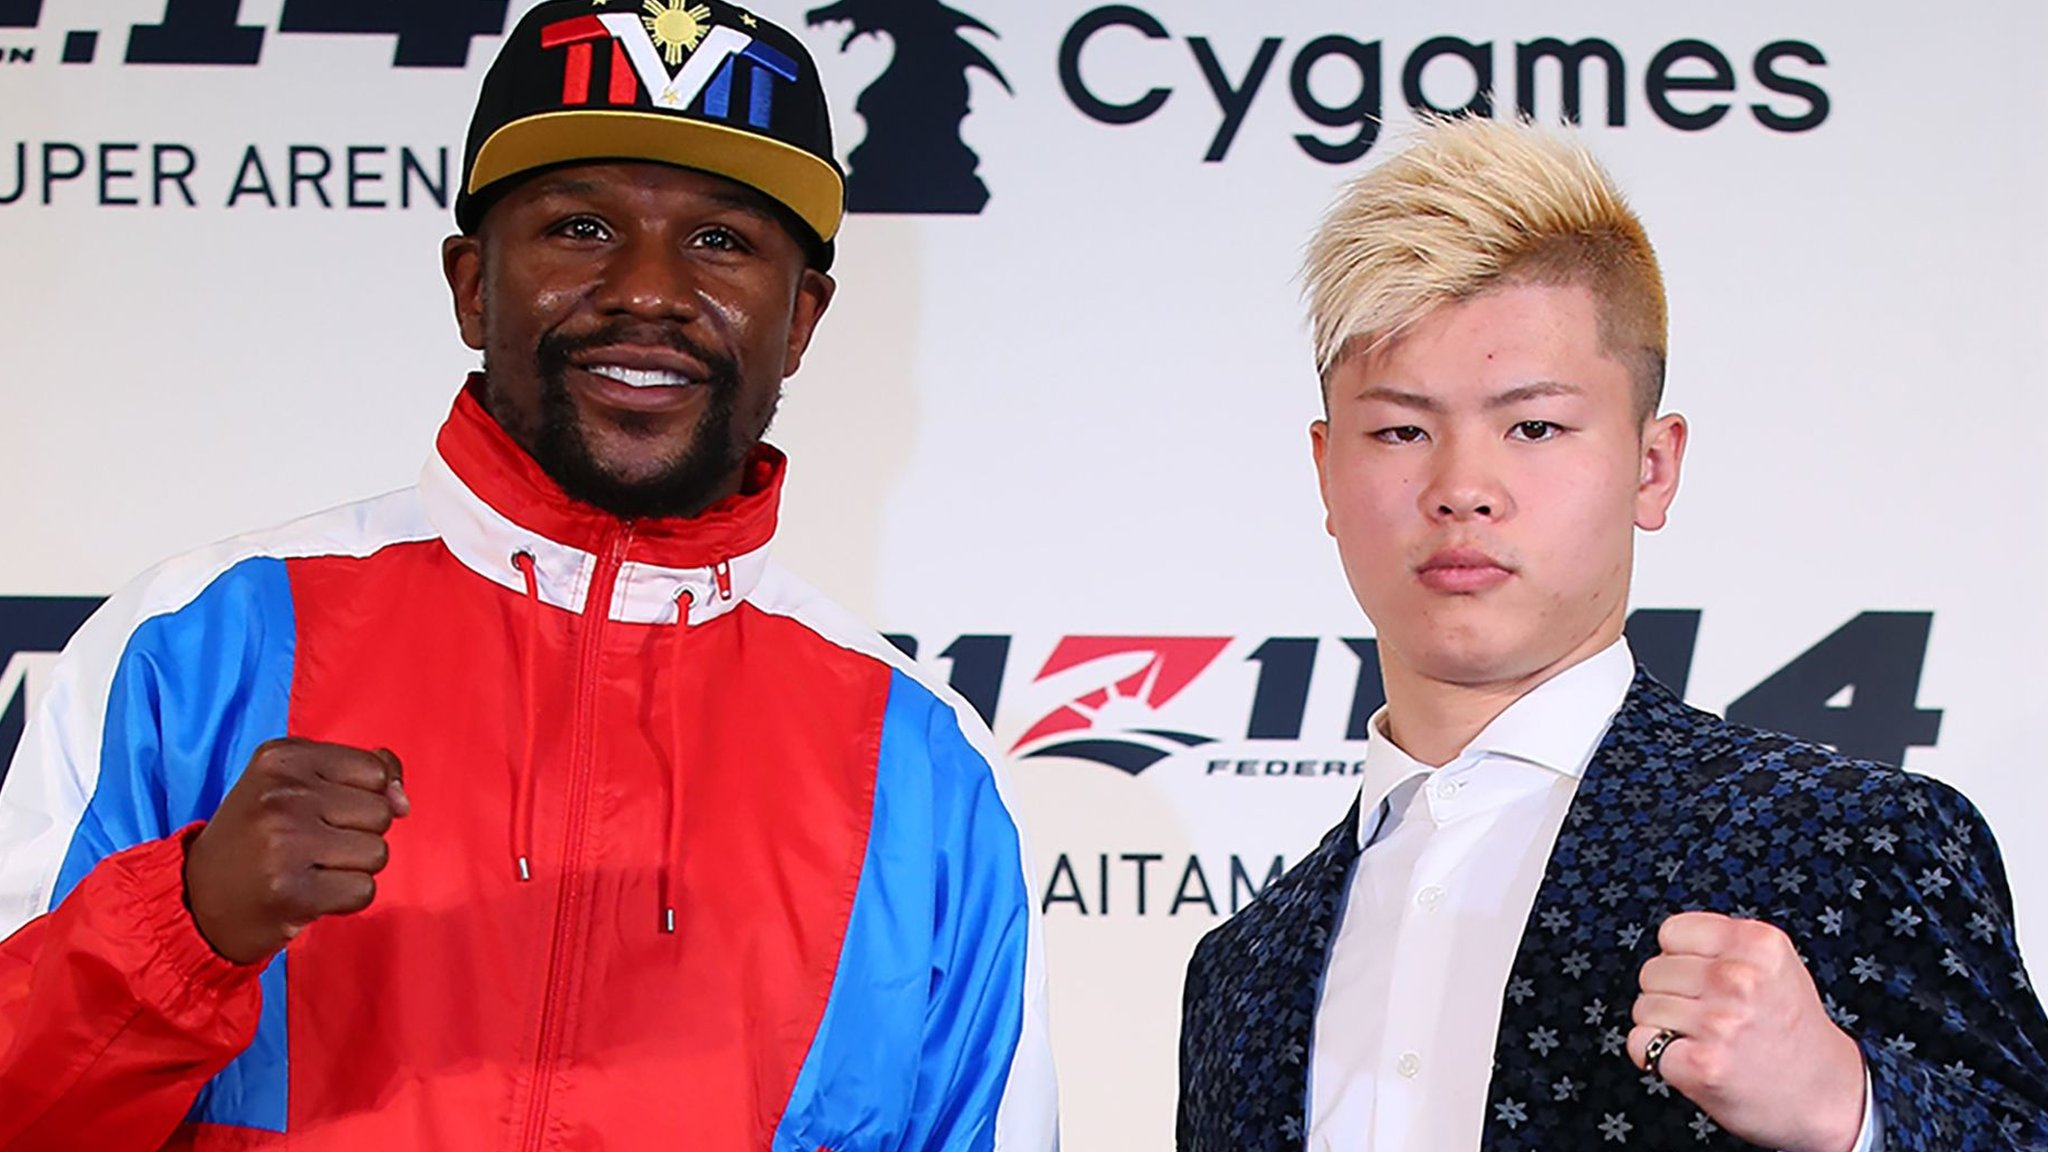 Floyd Mayweather: Retired boxer agrees to face kickboxer Tenshin Nasukawa